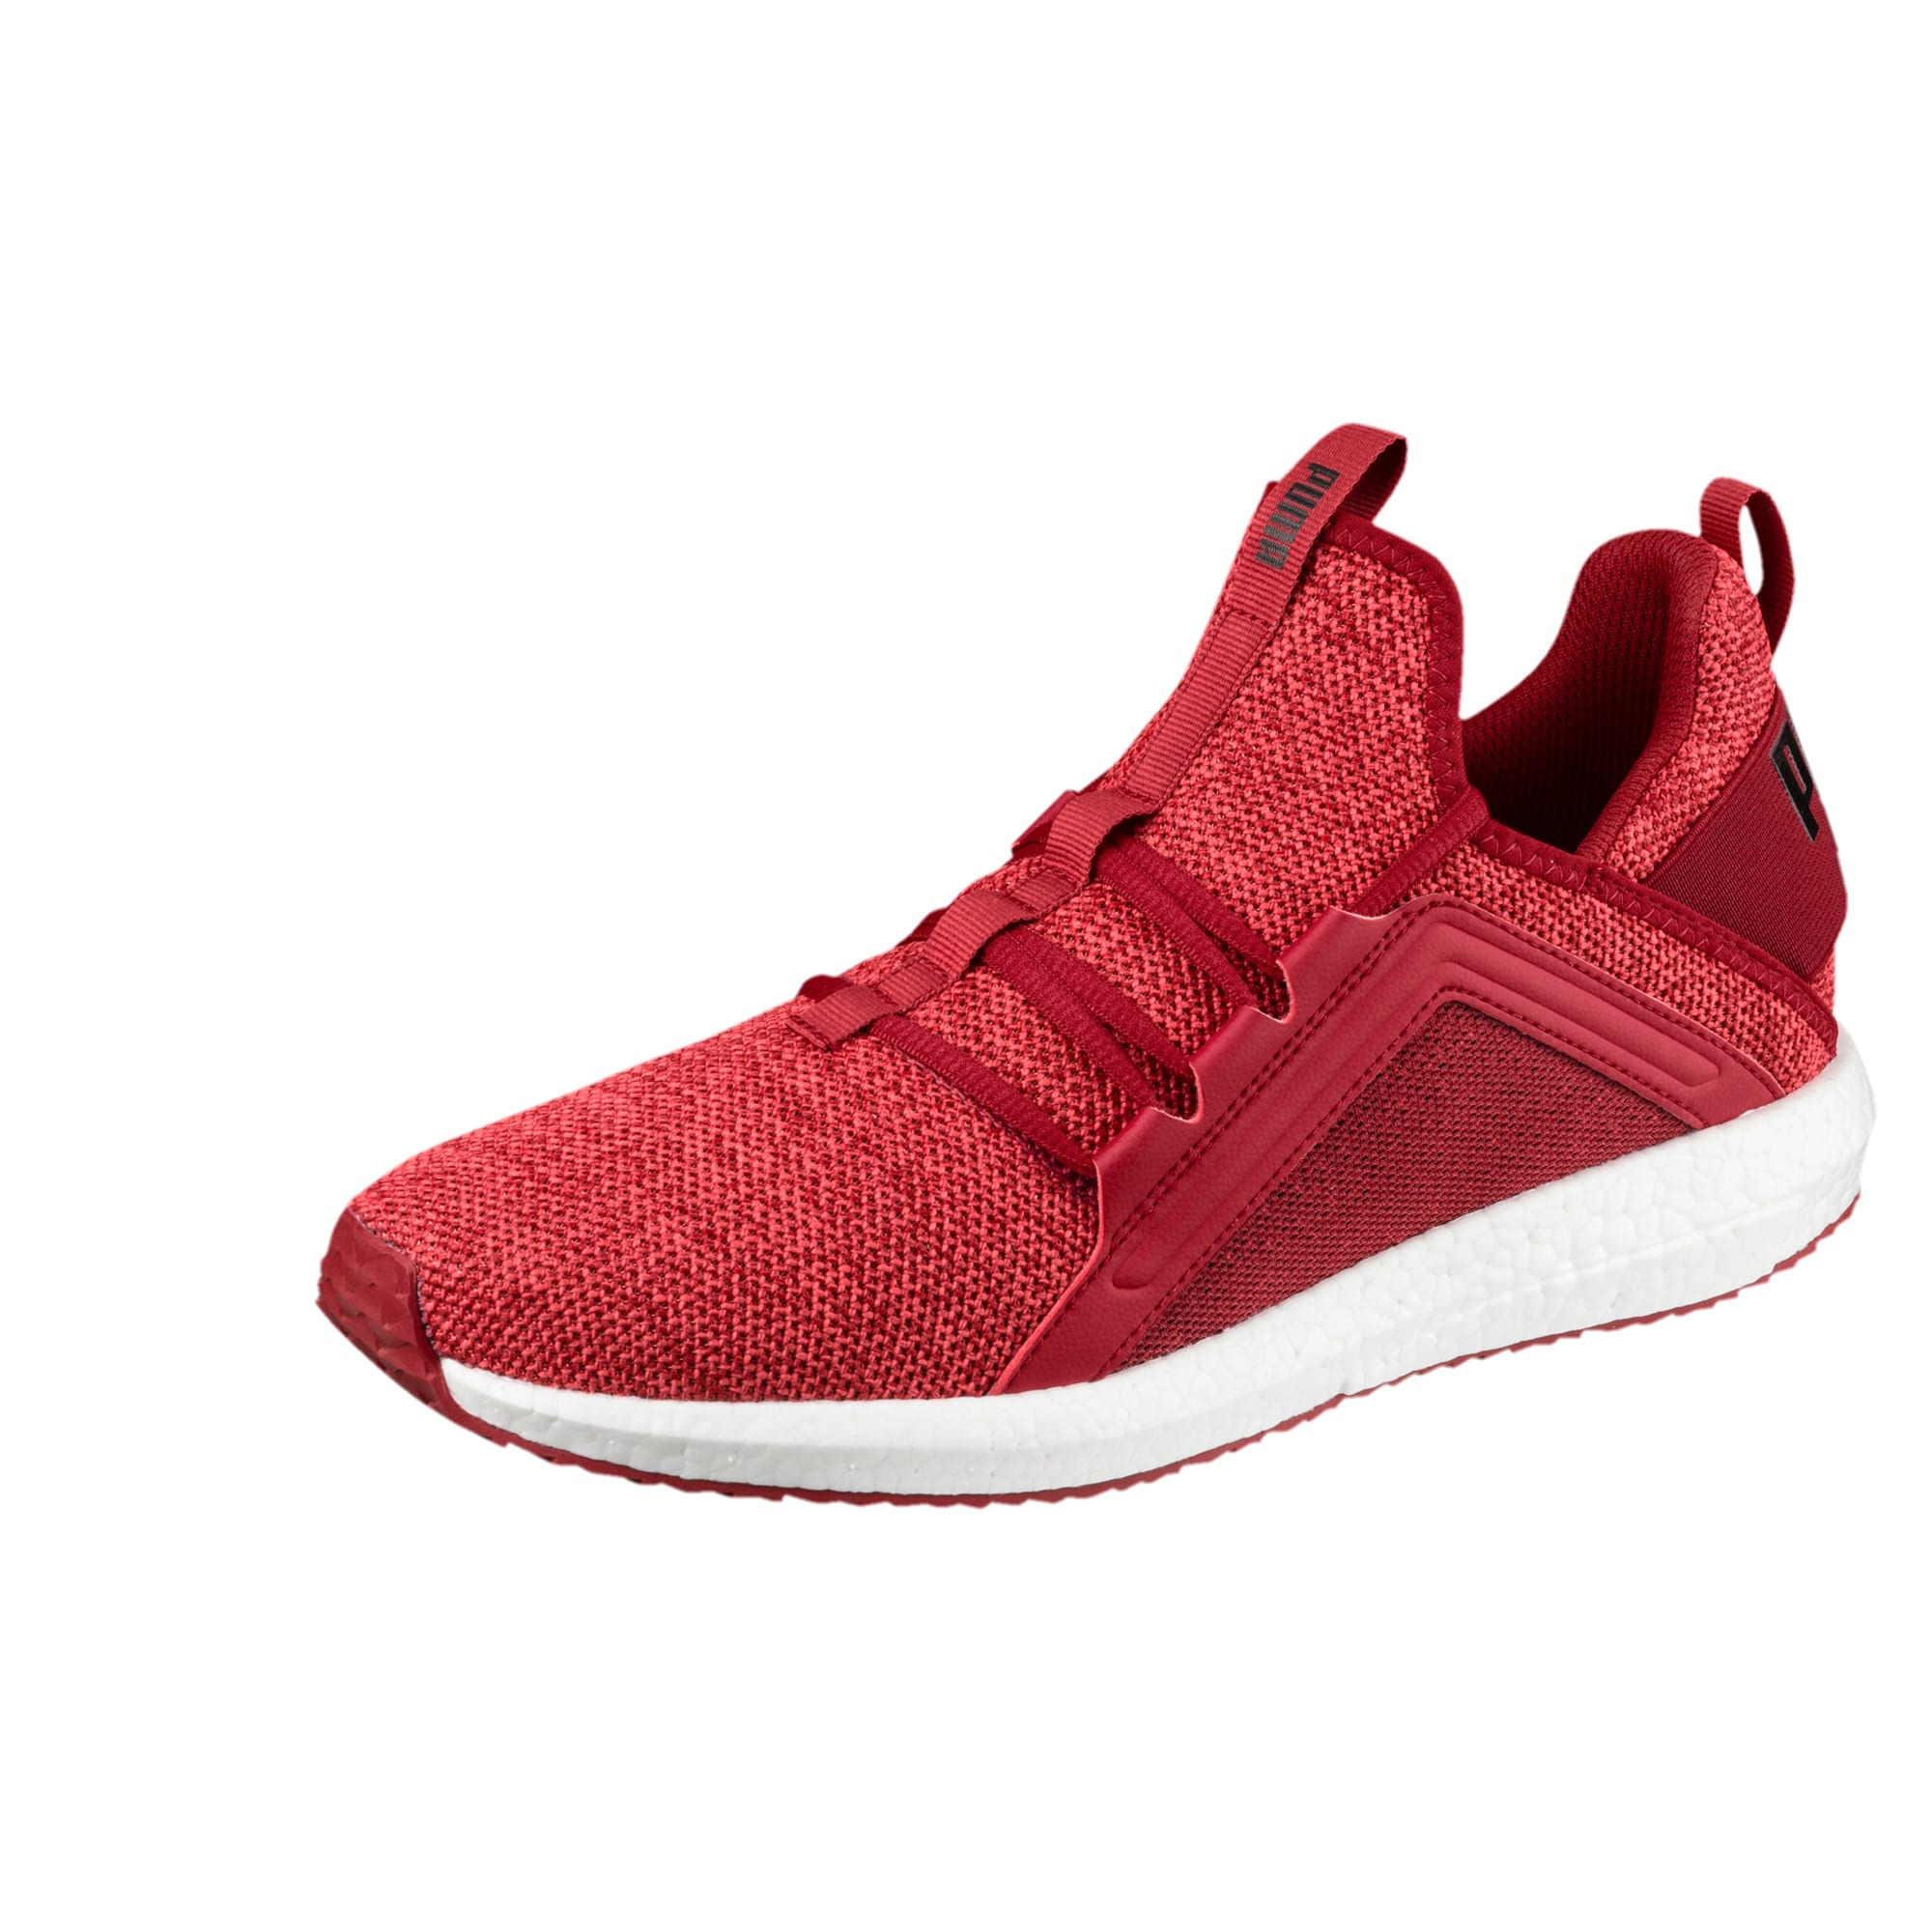 Thumbnail 1 of Mega NRGY Knit Men's Running Shoes, Red Dahlia-Flame Scarlet-Blk, medium